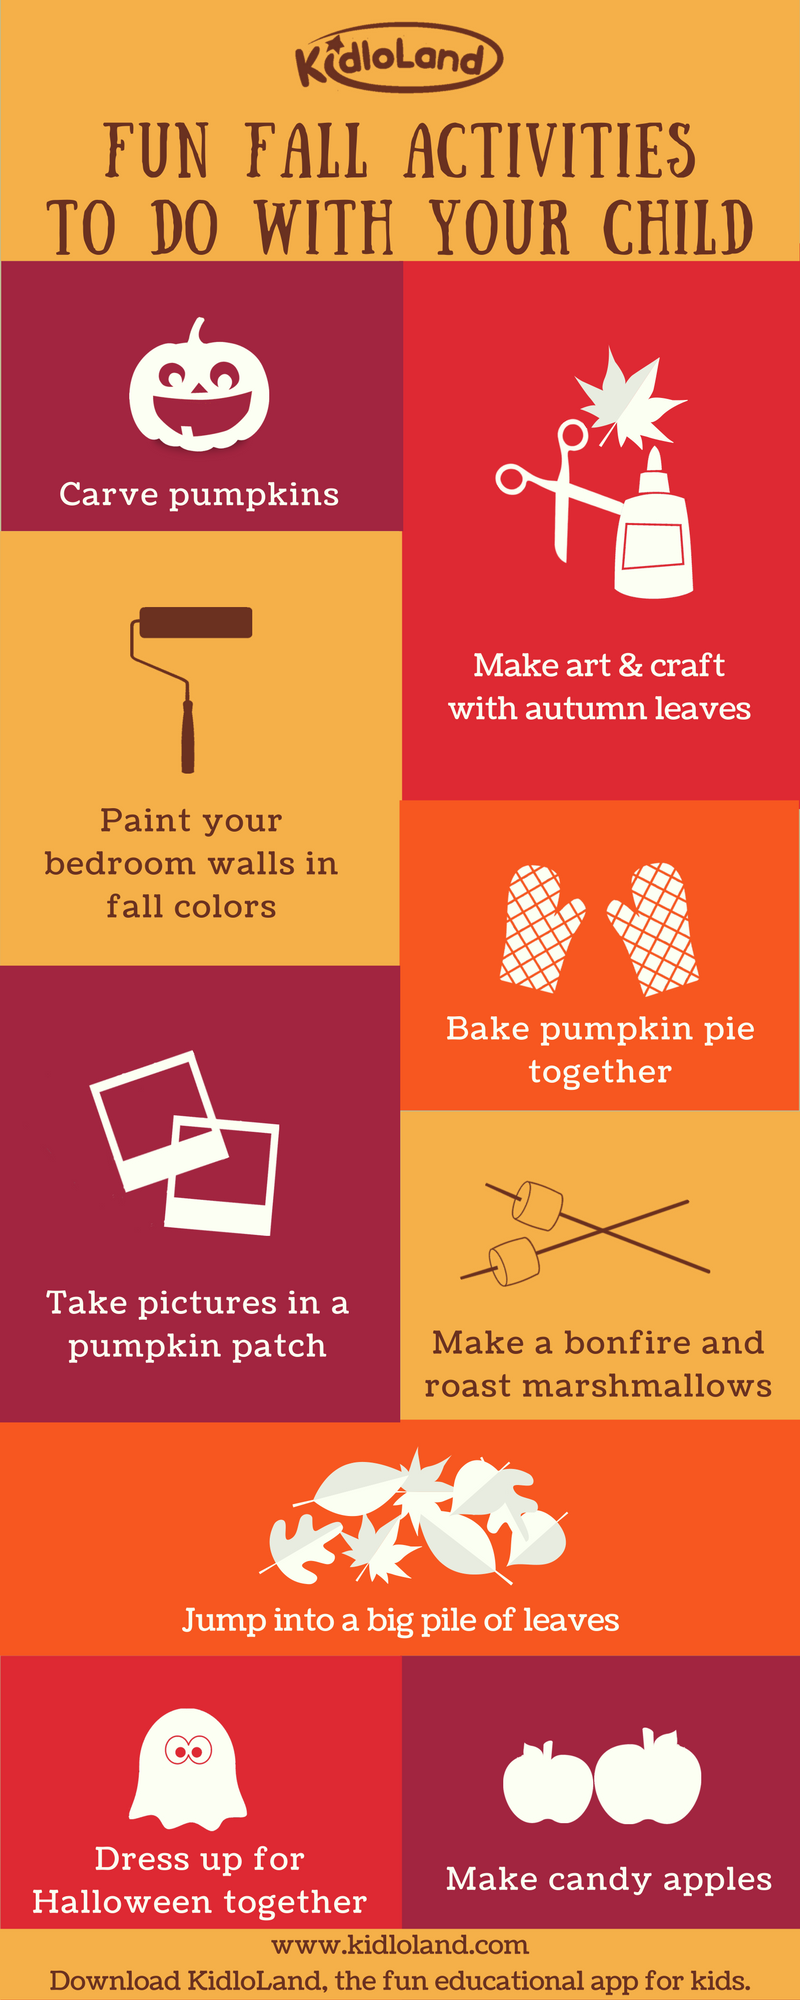 fun-fall-activities-to-do-with-your-child-final